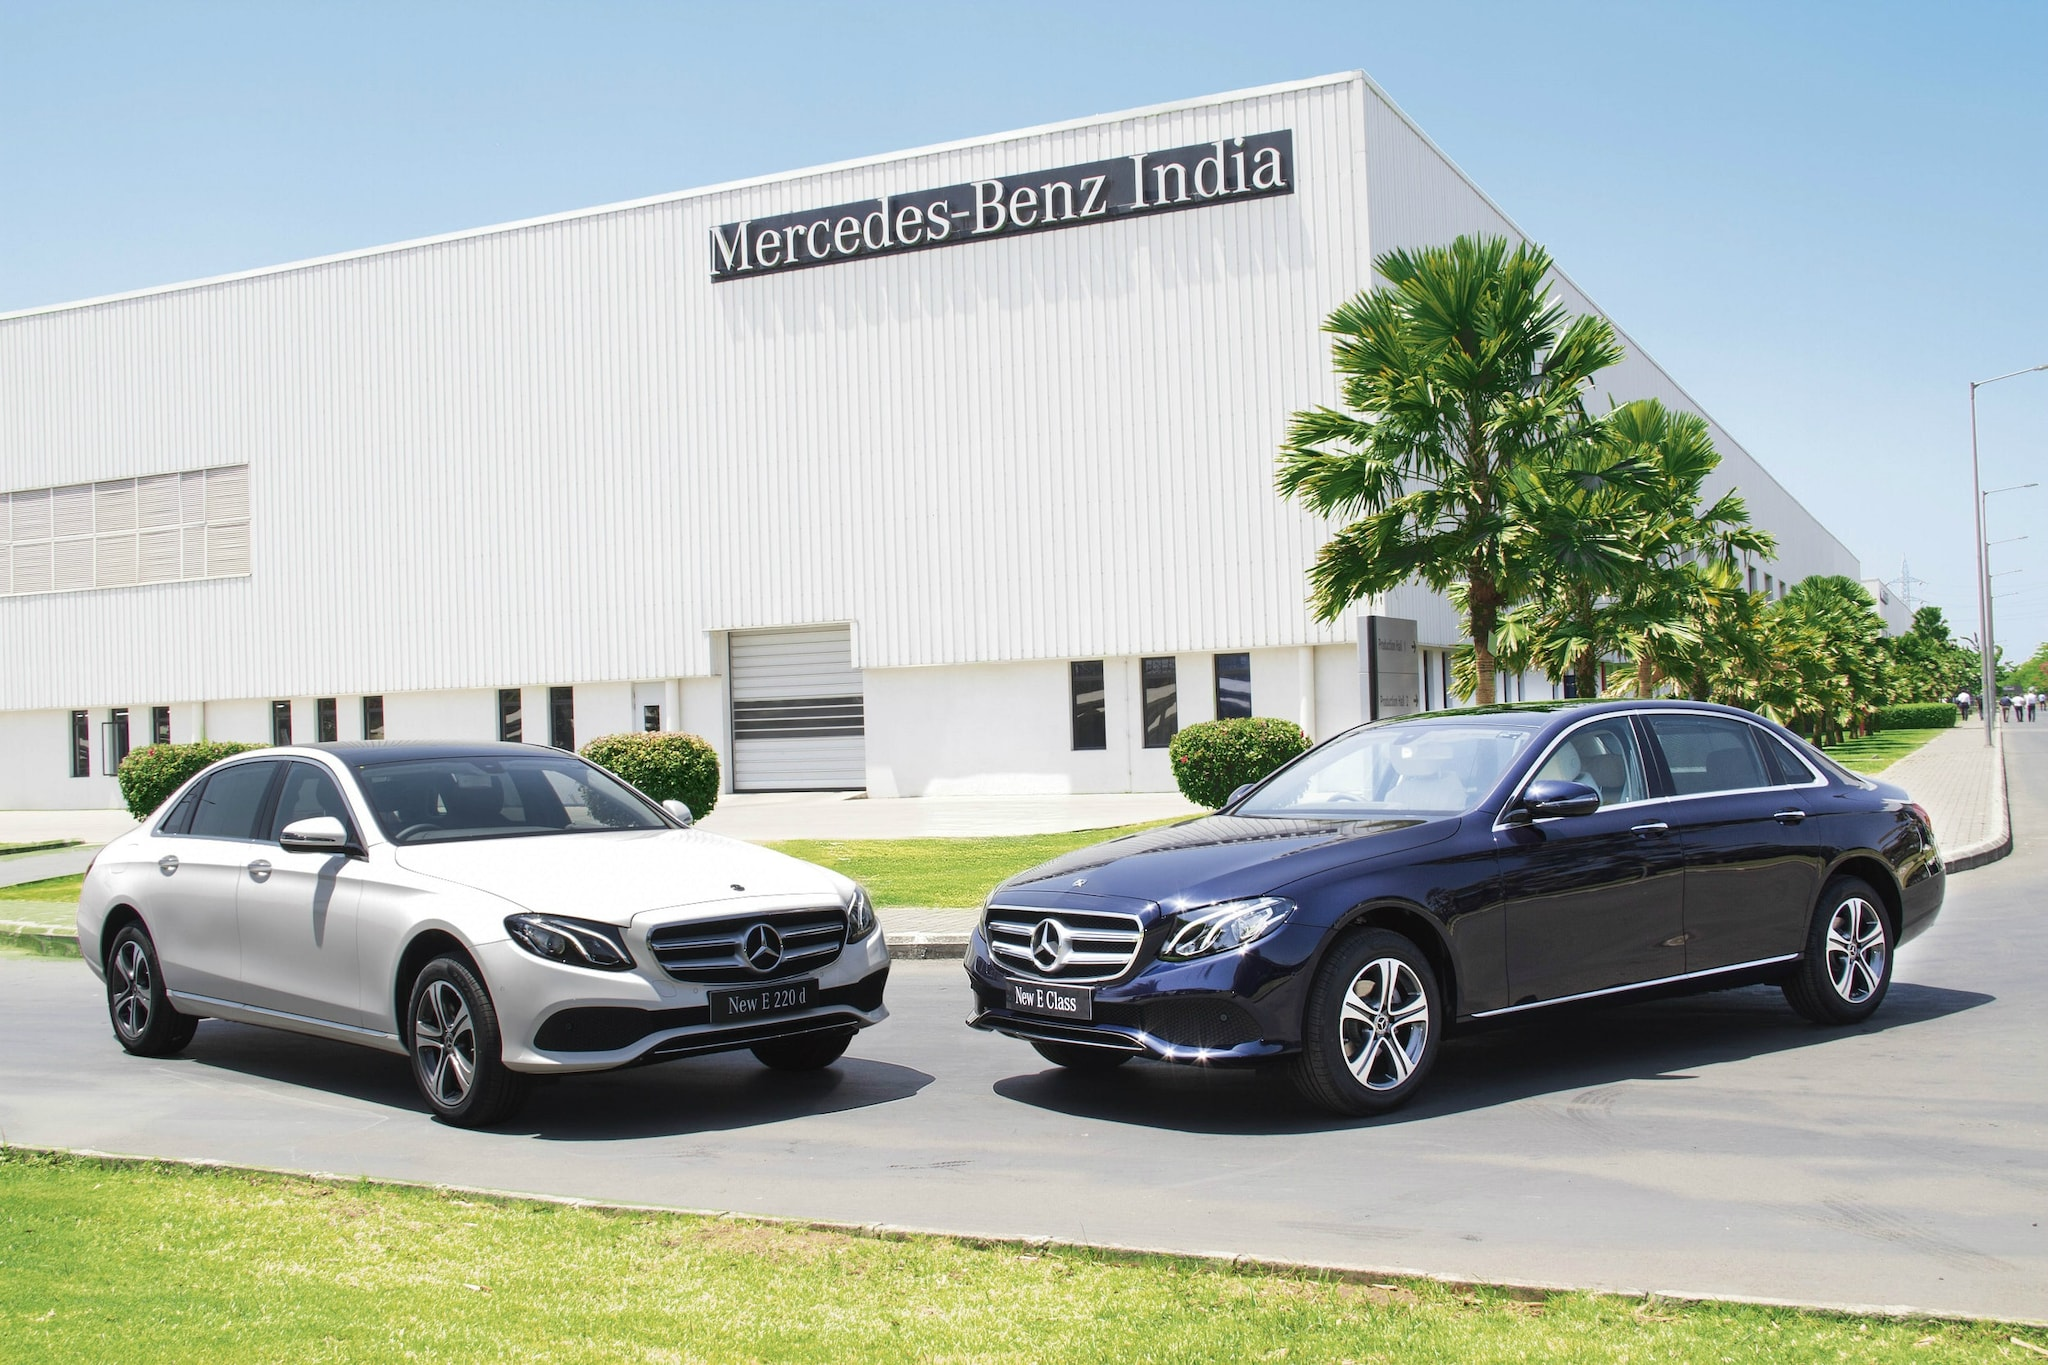 Mercedes-Benz Launches 'Made in India' BS-VI LWB E-Class, Prices Starting From Rs 57.50 Lakh